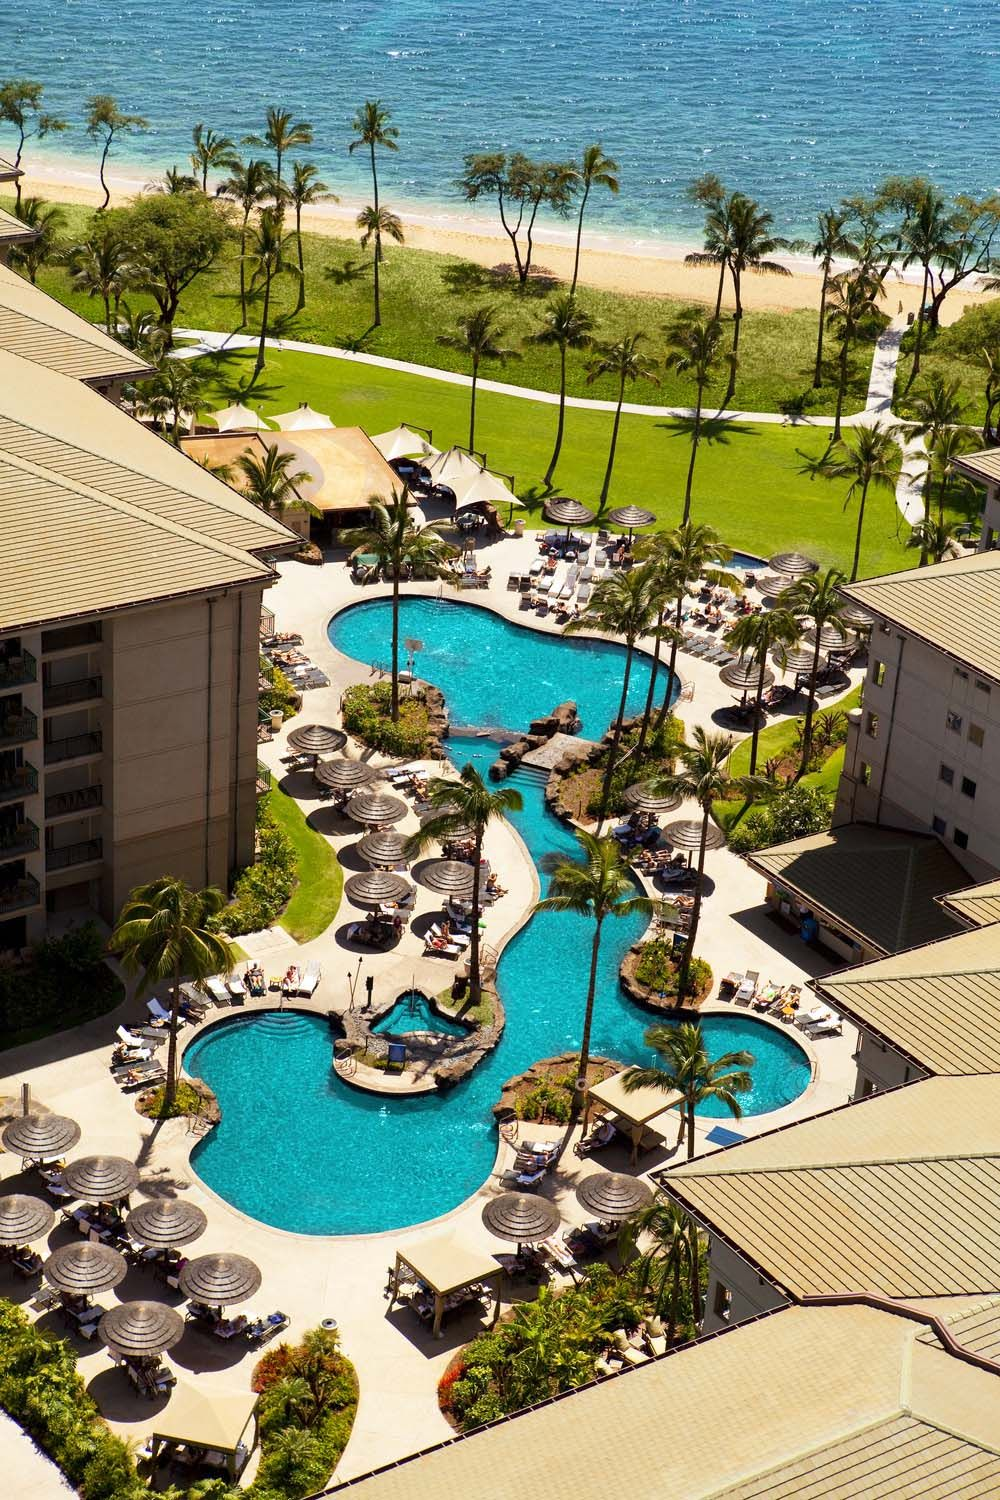 Kihei Hotels and Places to Stay